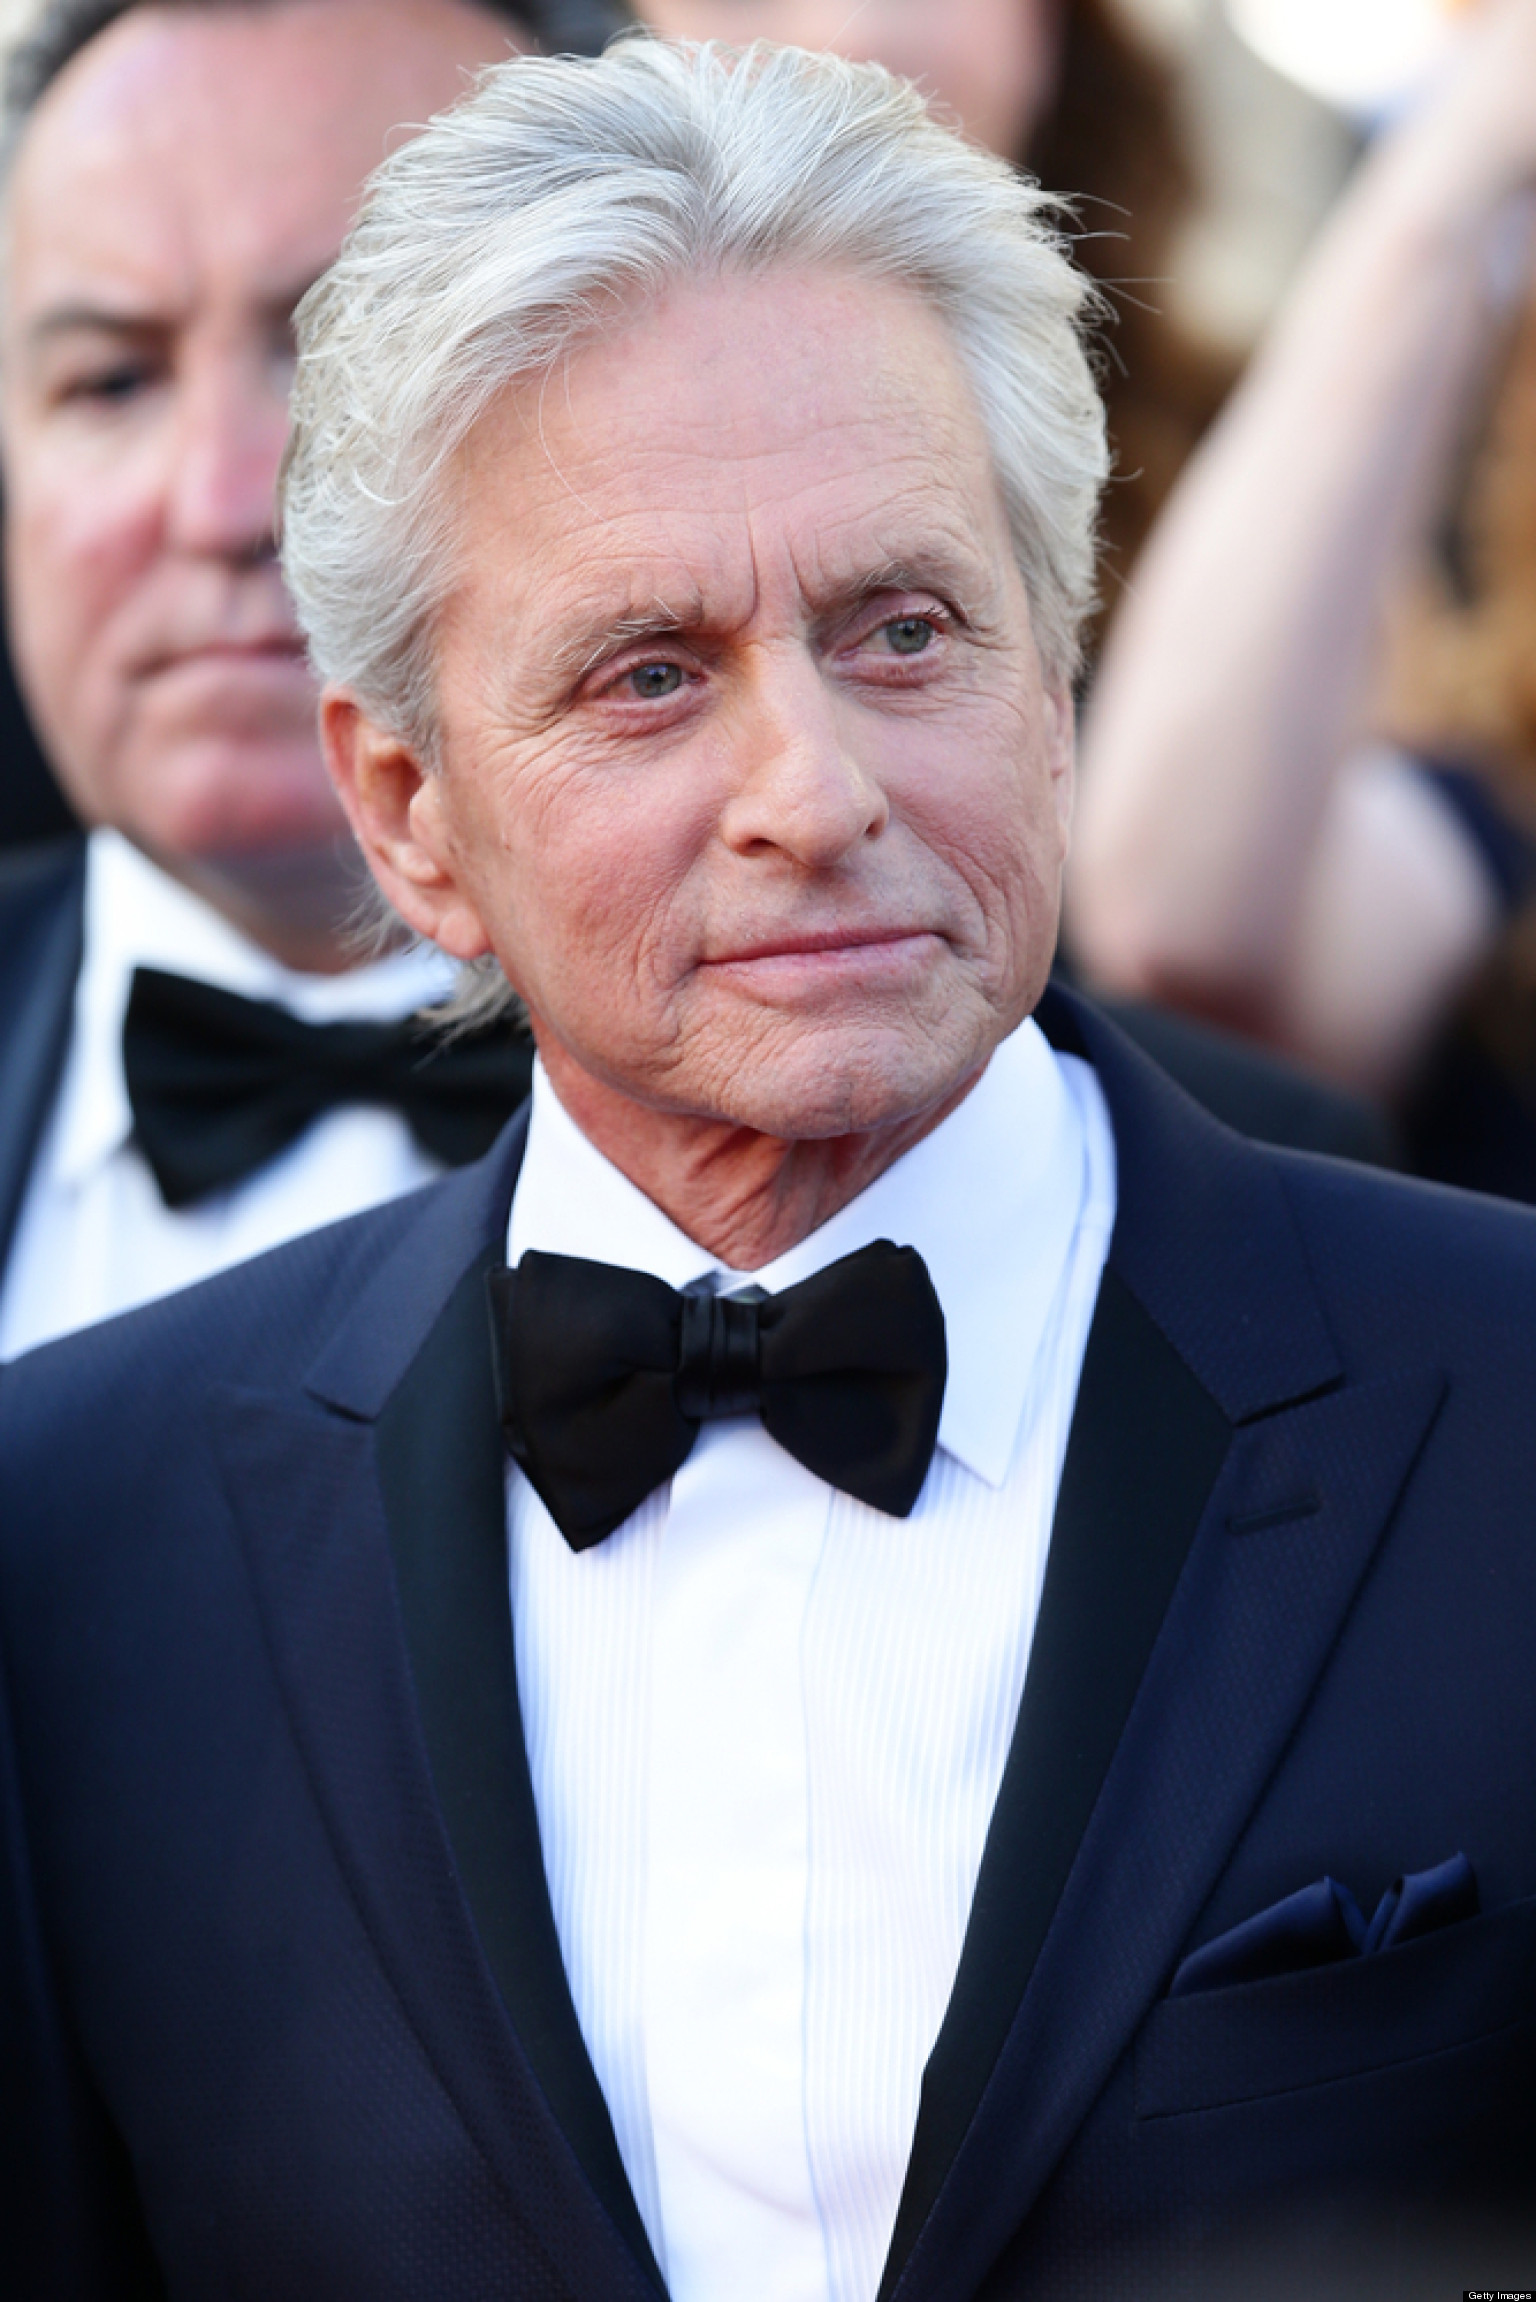 michael douglas 39 throat cancer not really caused by oral sex rep says updated. Black Bedroom Furniture Sets. Home Design Ideas